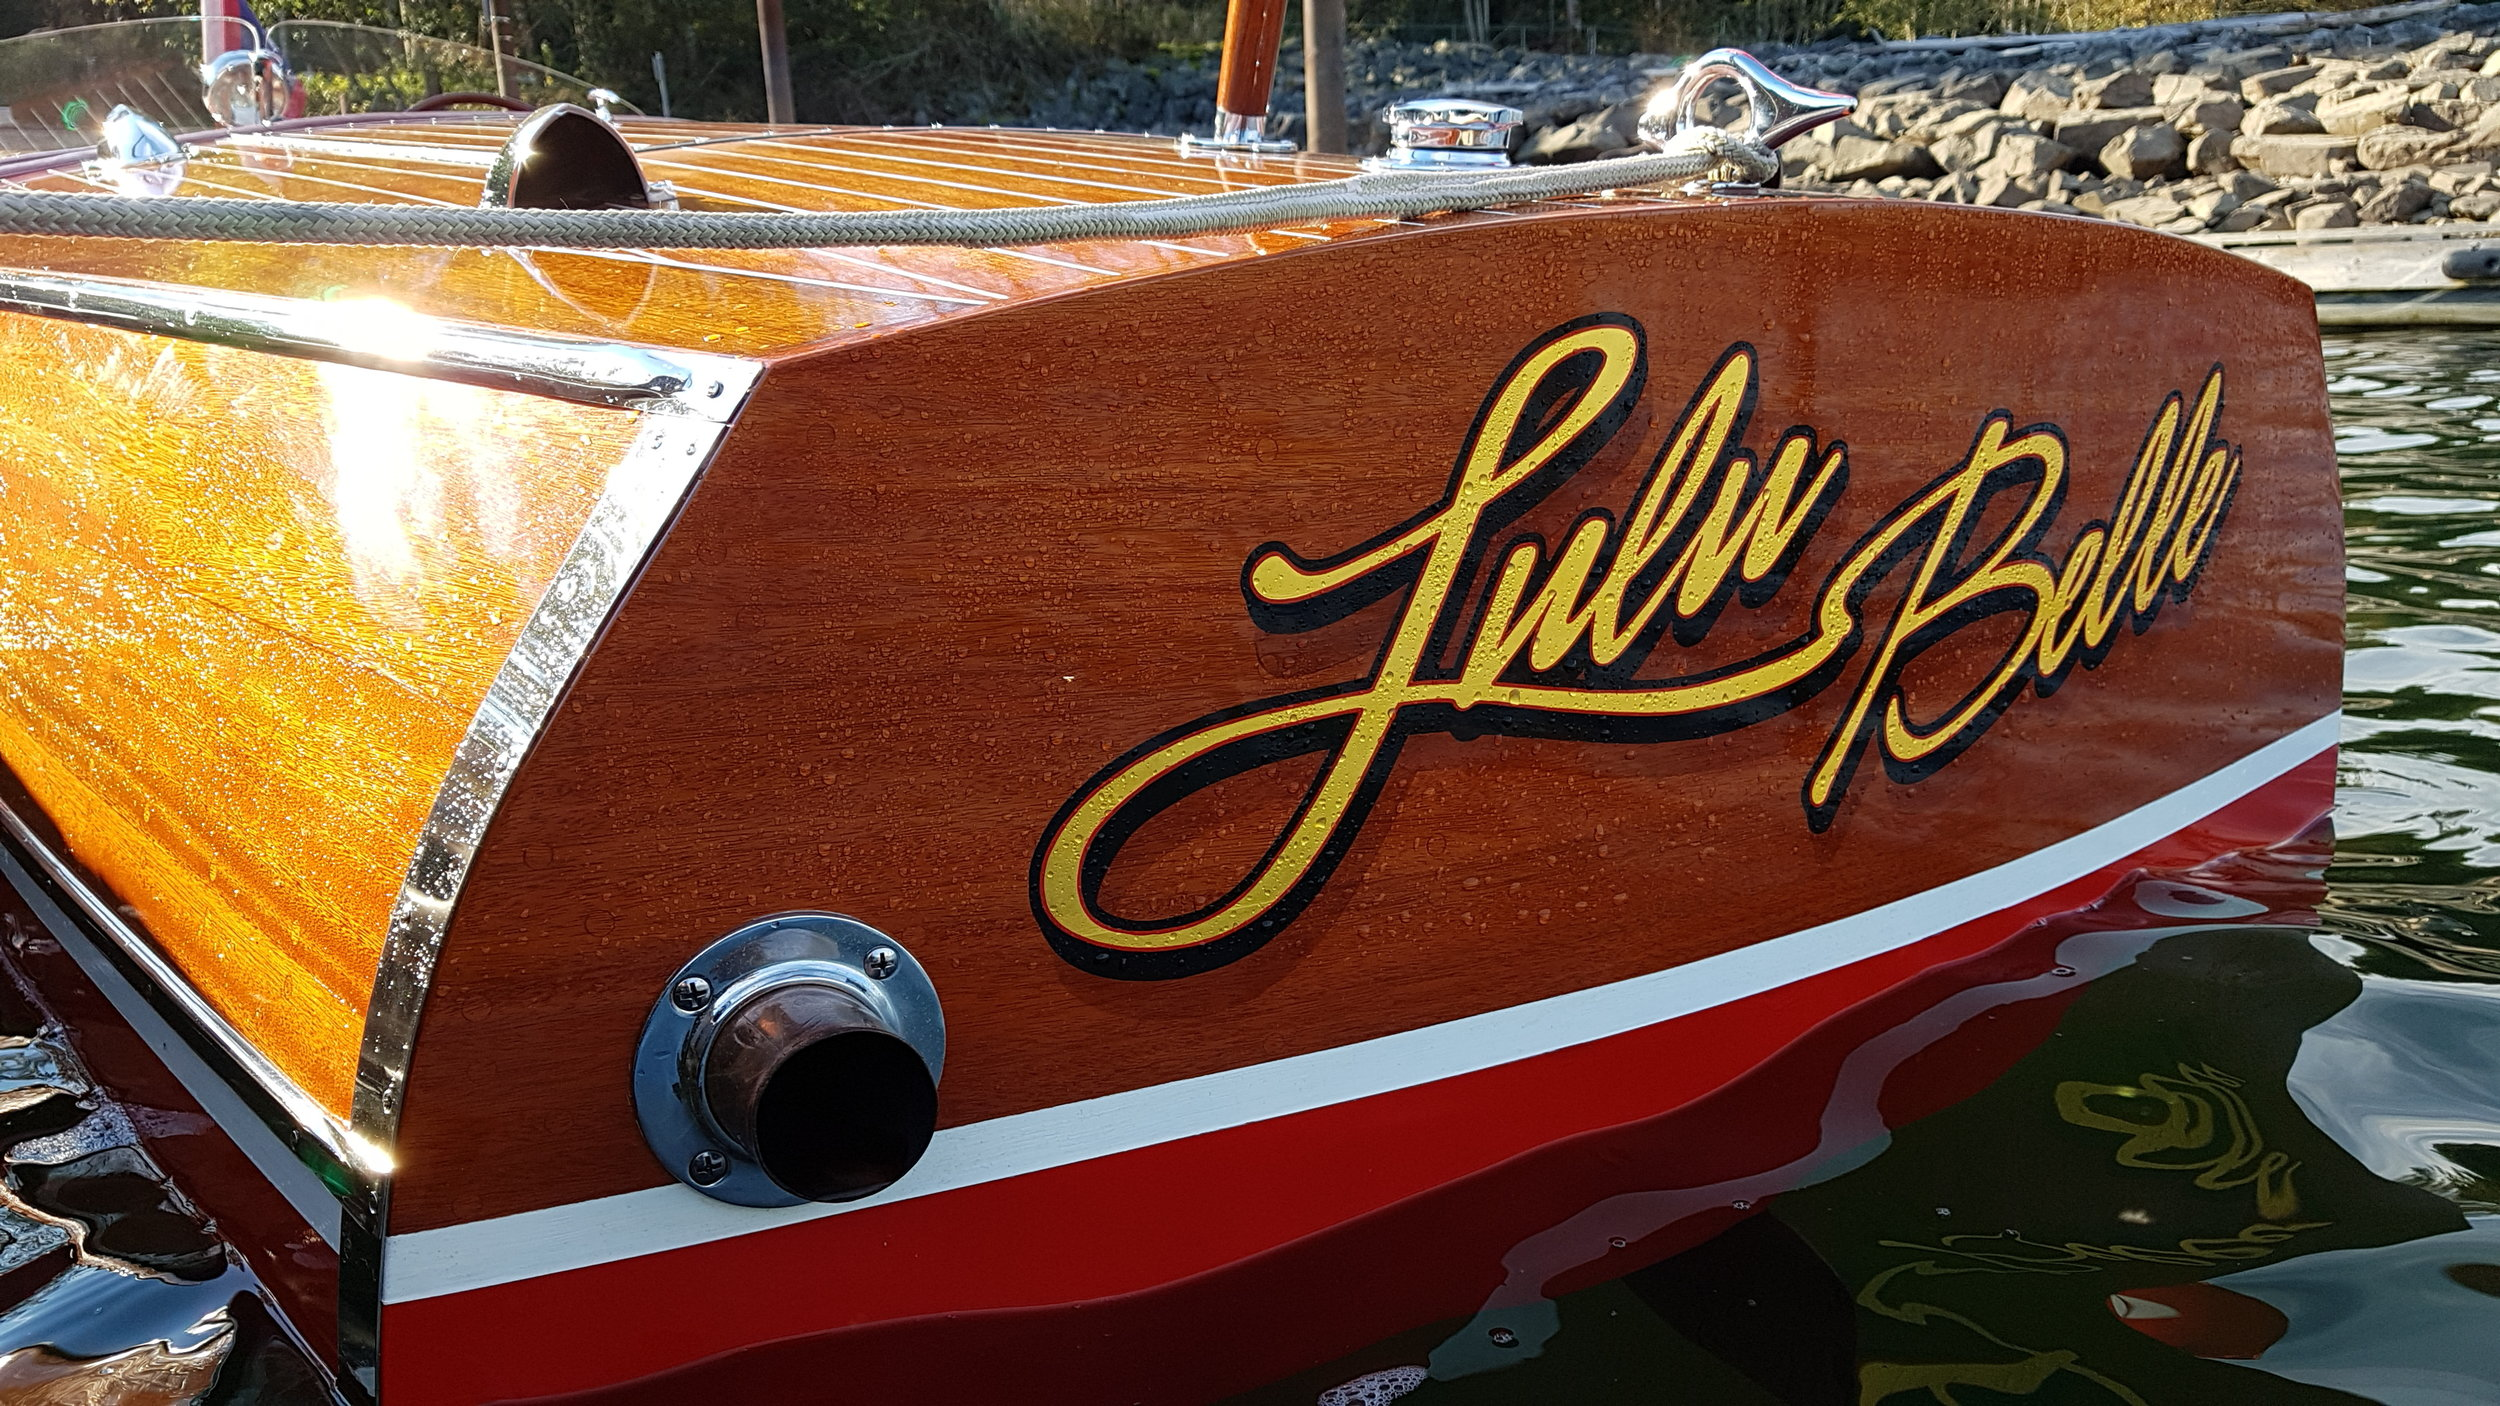 Lulu Belle is a 1942, - 17', Chris Craft Special Runabout. This is my first boat. It was a shipwreck when we bought it and I did a 3 year full restoration on it. My wife Louise, thought I was crazy and couldn't understand why I had to have a boat. But she does understand my consuming, obsessive, compulsive, behavior . She puts up with a lot so I wanted to name the boat after her but she wouldn't have it! So how do you name the boat after her without putting her name on it? Well… Lulu Belle is what her Dad called her when she was little.By Steve Leslie